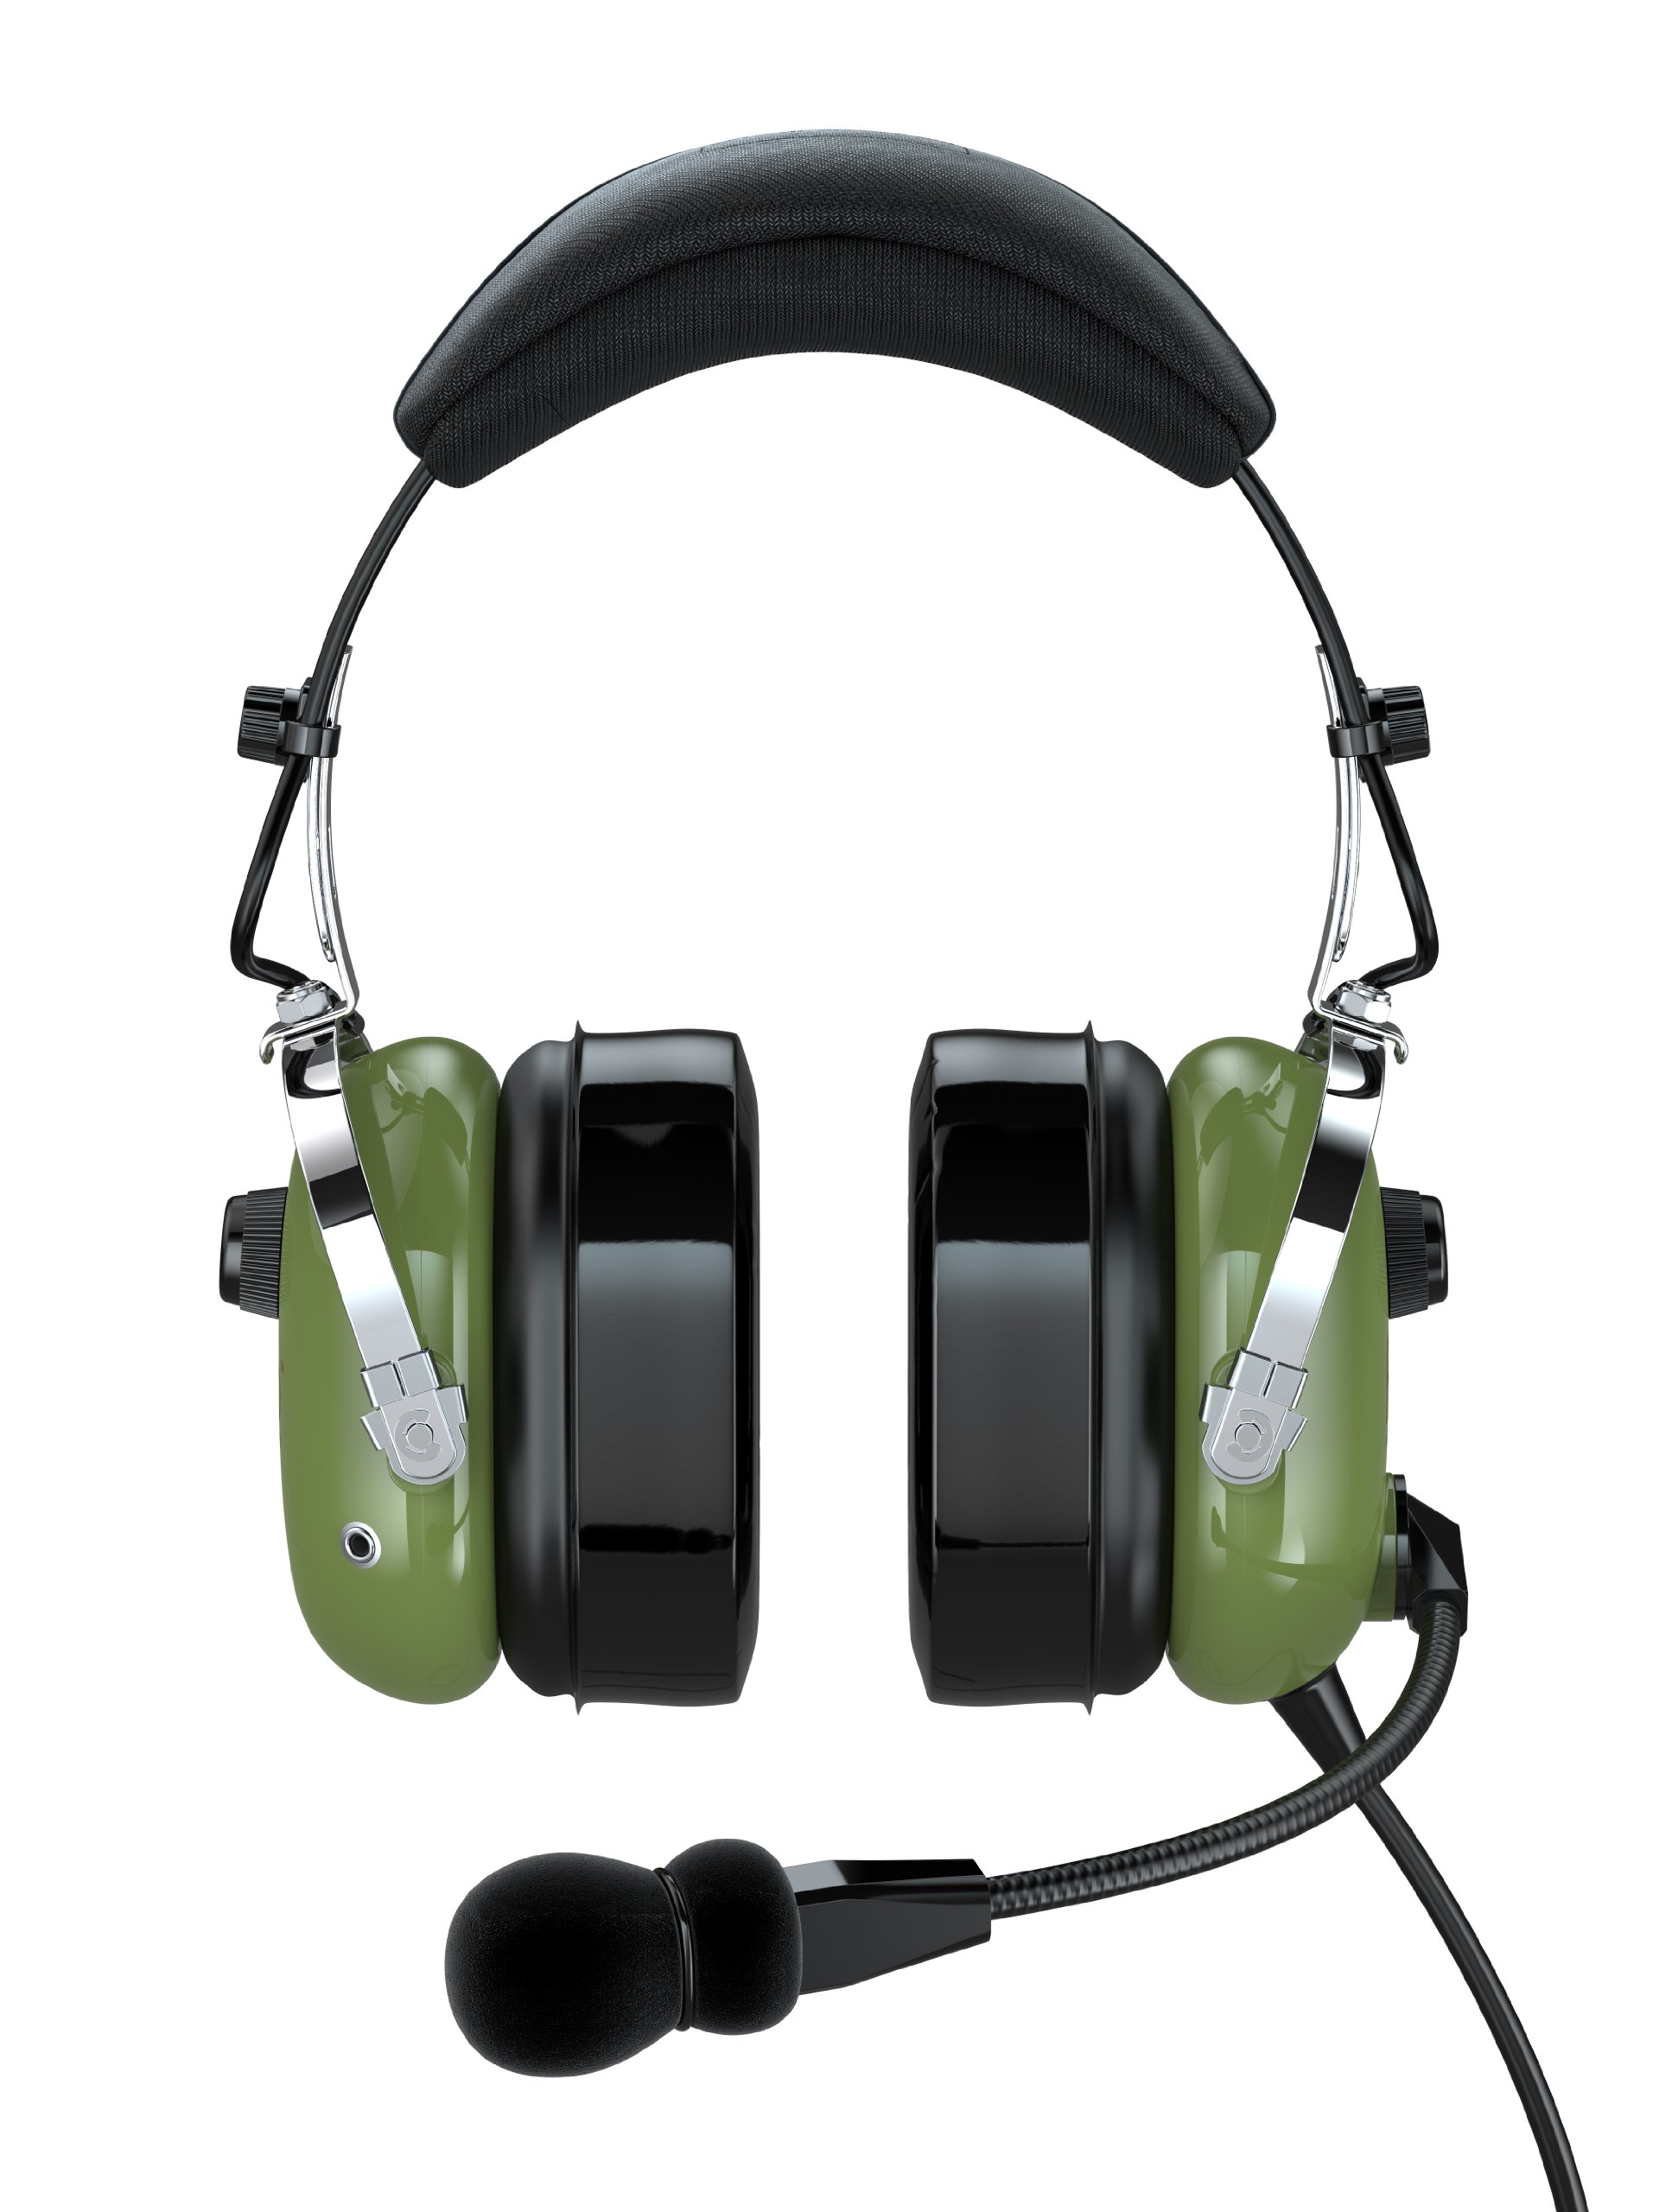 FARO G2-PNR Premium Pilot Aviation Headset with Mp3 Input (Adapters for aviation headset connectors, standard dual GA adapter universal support)-Green